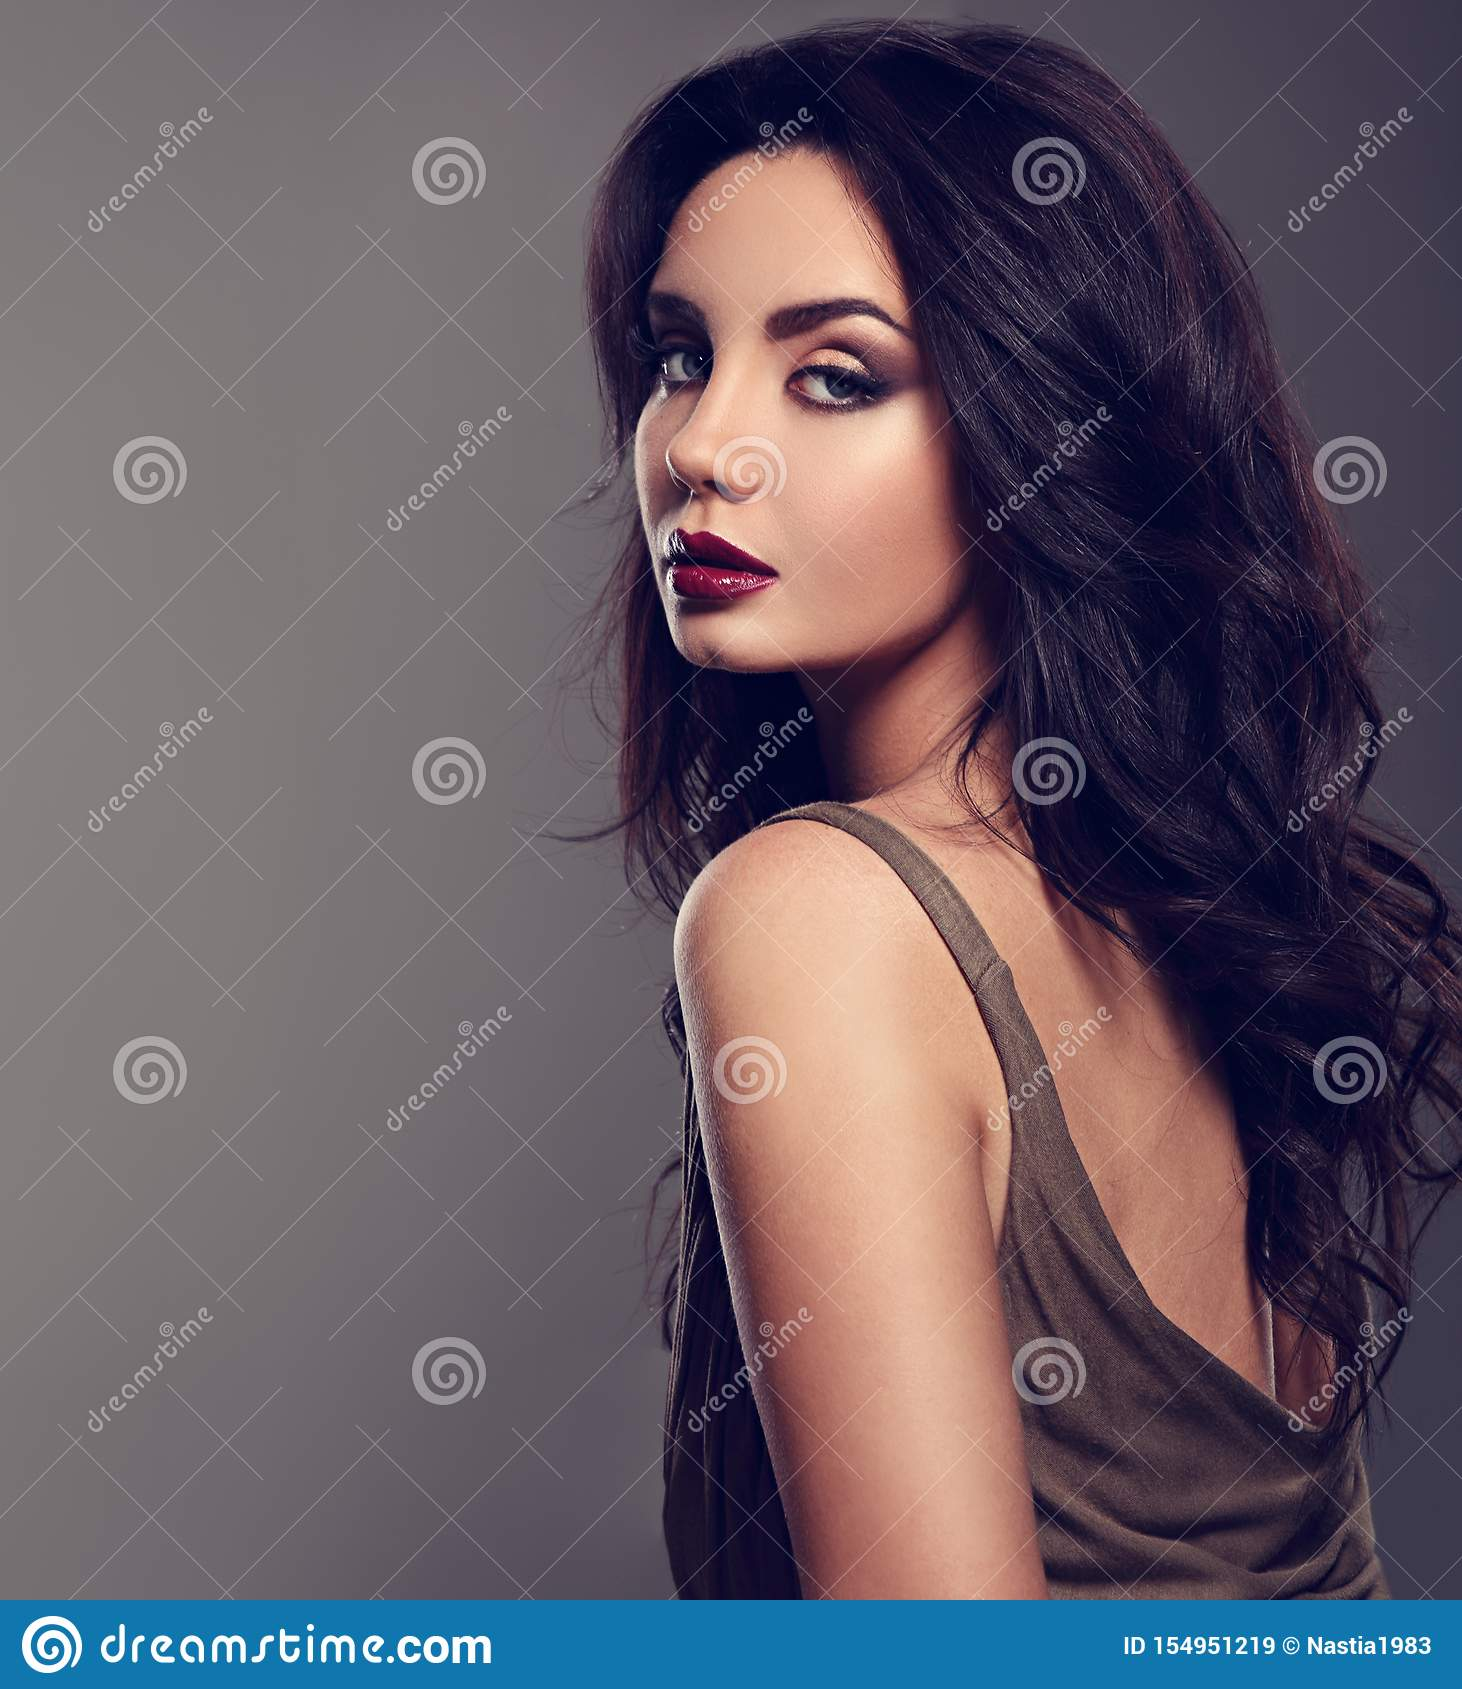 Beautiful Bright Makeup Woman With Long Black Curly Hair